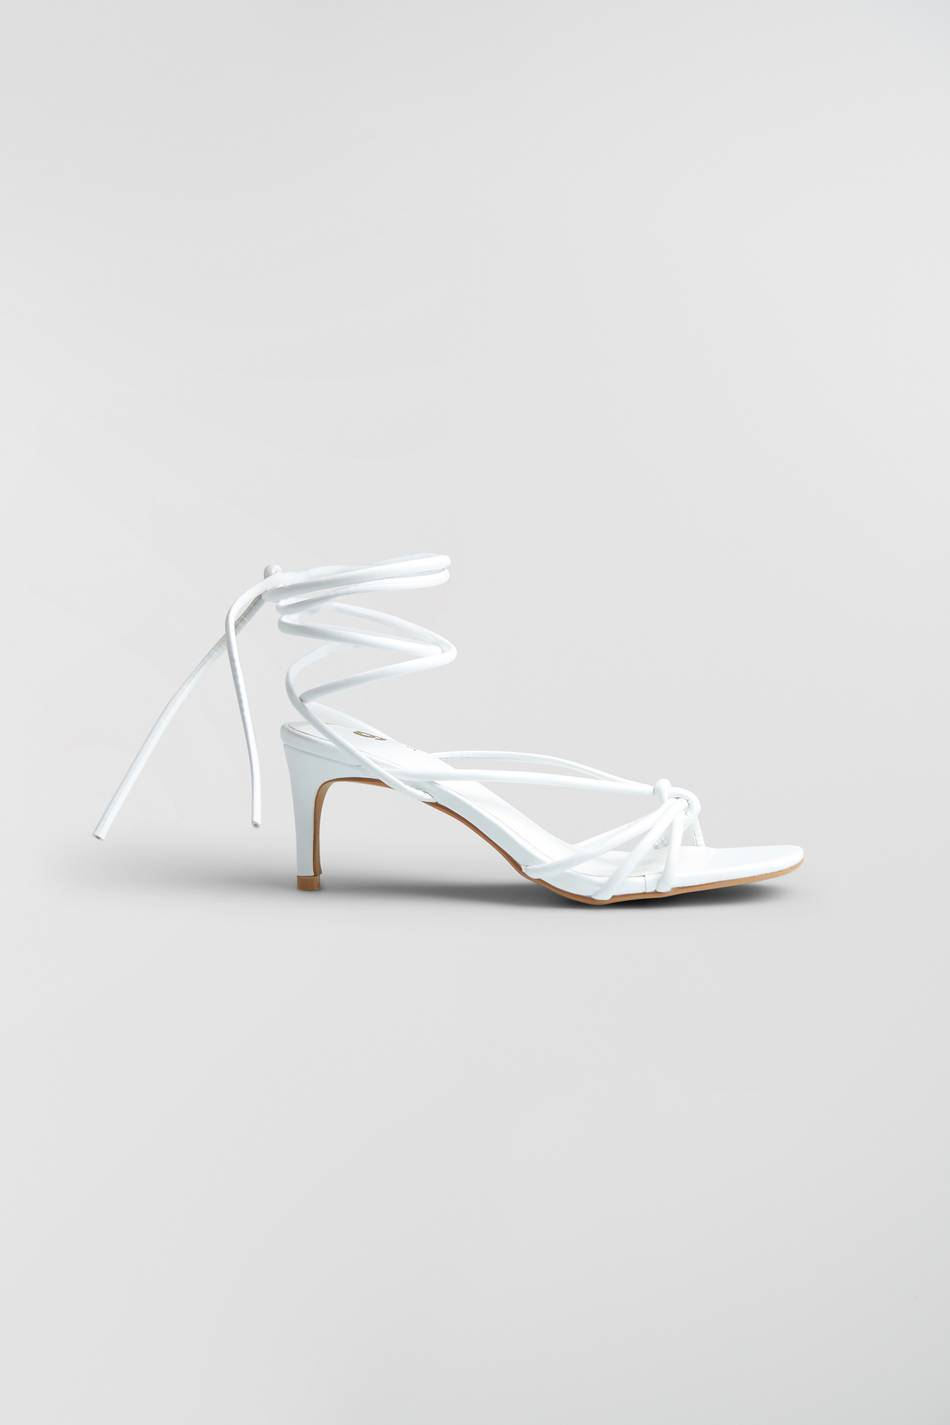 Gina Tricot Ingrid lace up sandals